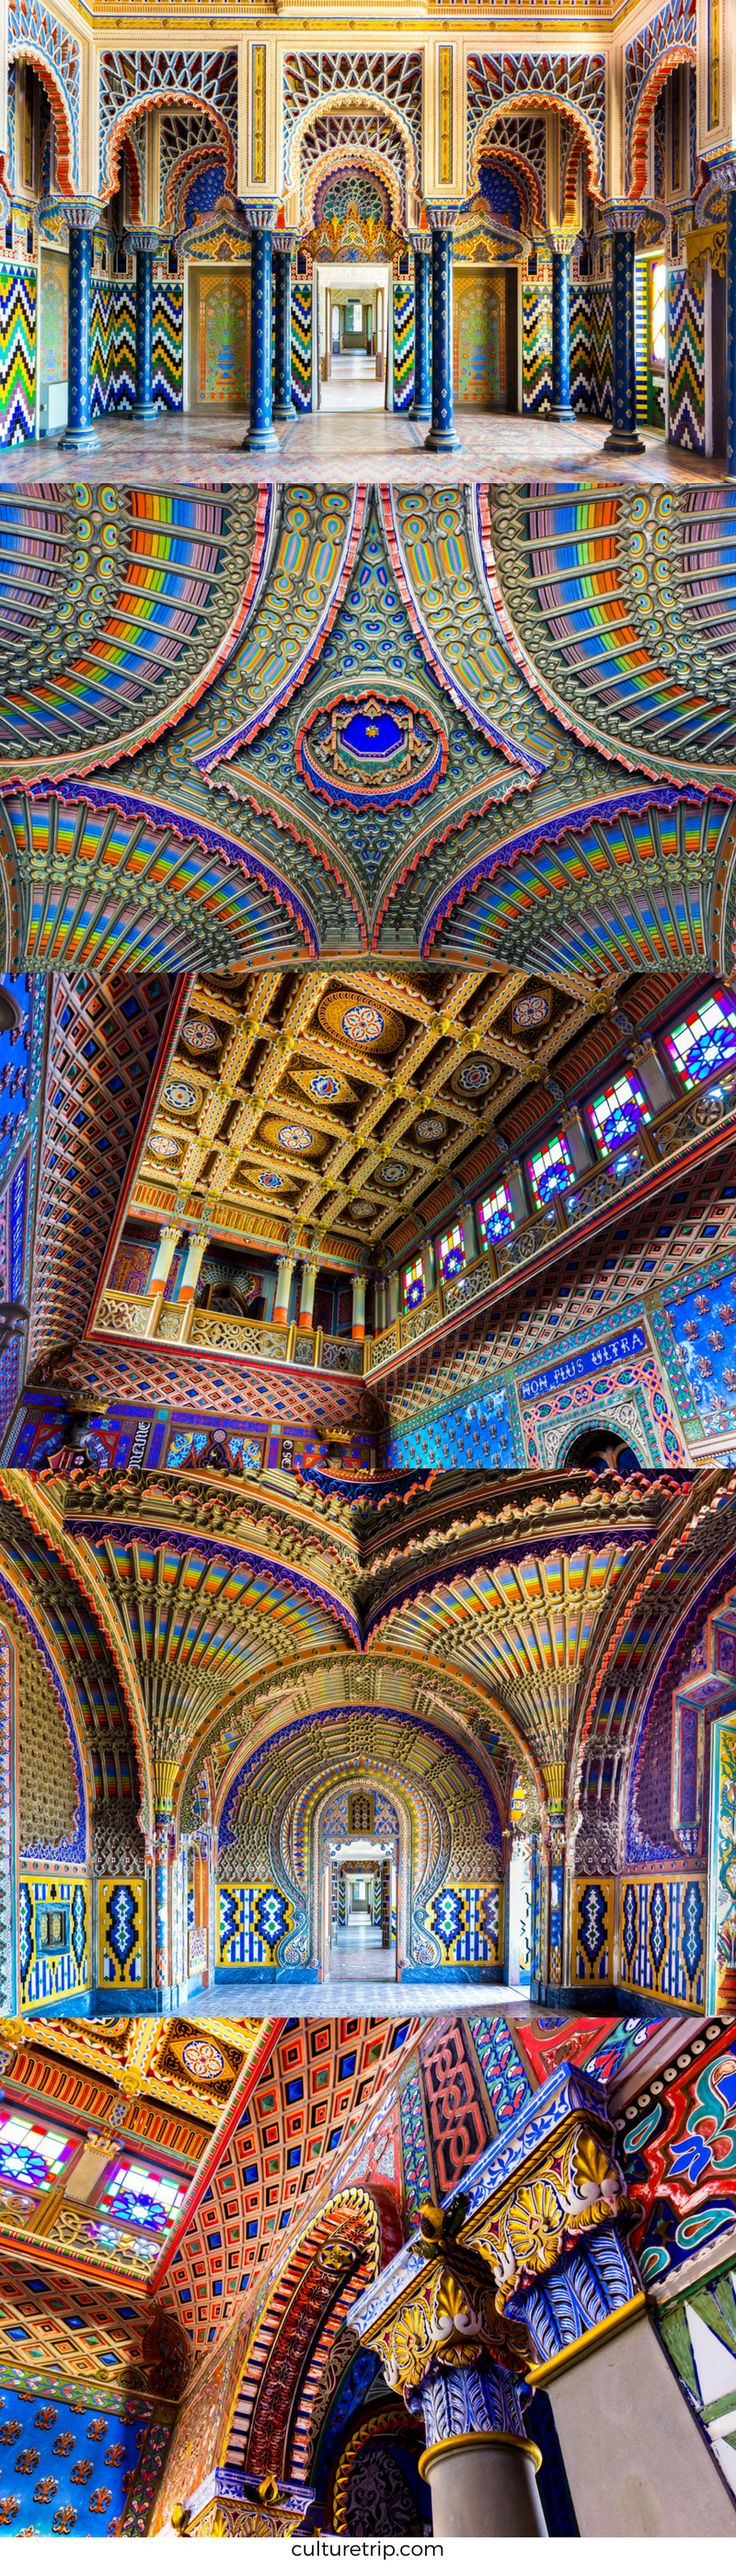 Sammezzano Castle, Italy. Just 40 km away from Florence lies the most beautiful room in the world!